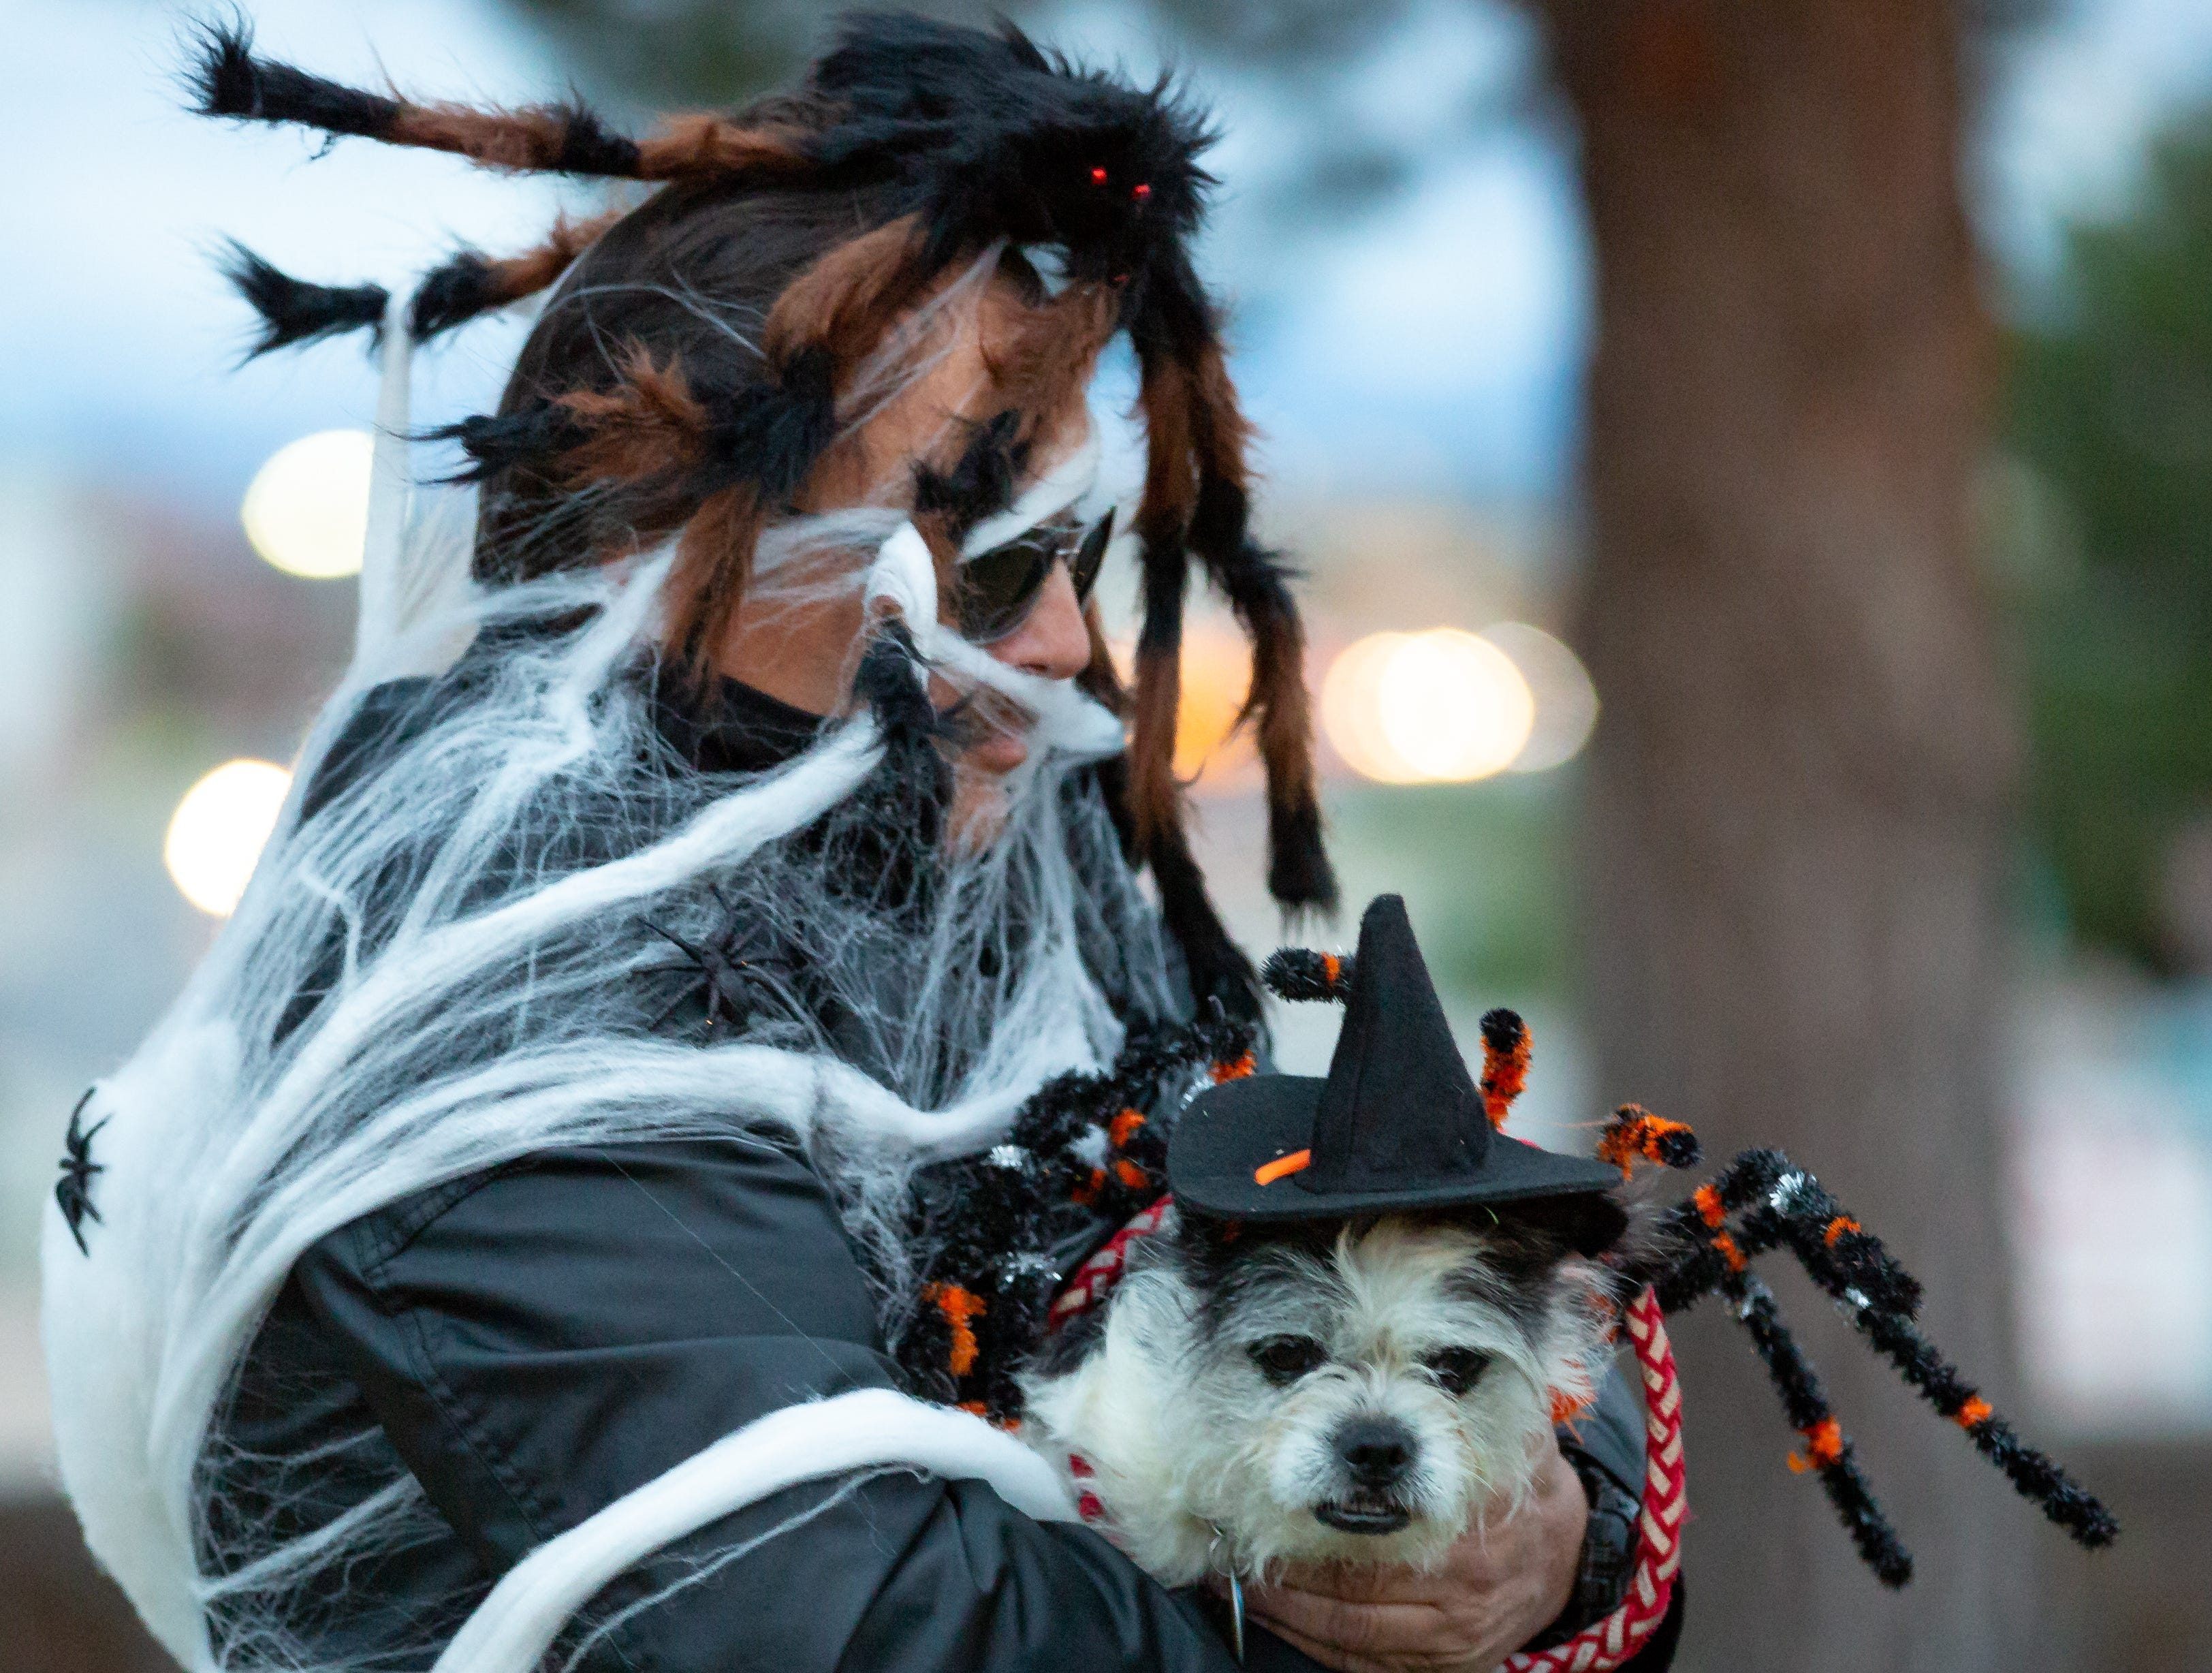 Natasha, 3, and her owner Bill Vanderkamp, dress as a spider family at the start of the Halloween costume contest for pets on Wednesday, Oct. 17, 2018, during the final Yappy Hour of the year at St. Clair Winery and Bistro.